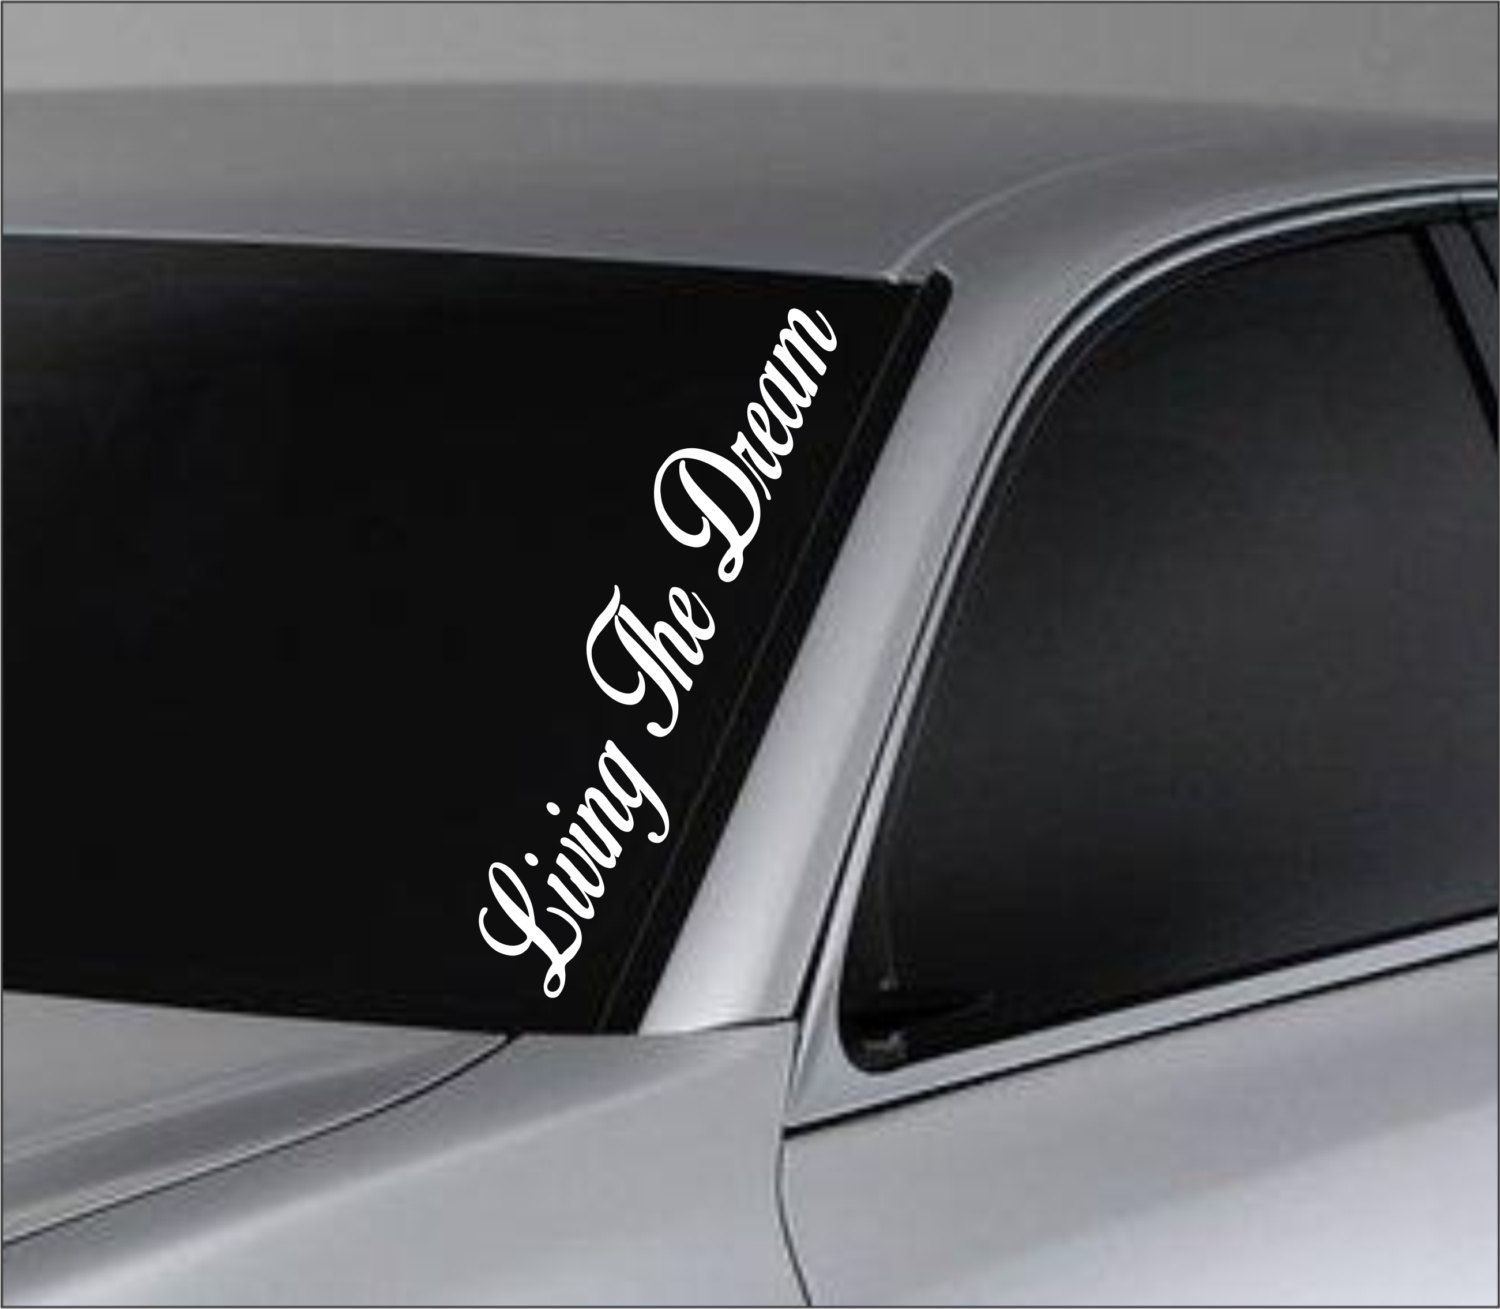 Living the dream car window windshield lettering decal sticker decals stickers jdm drift dub vw lowered jdm fresh detailed stance fitment by langleyproducts